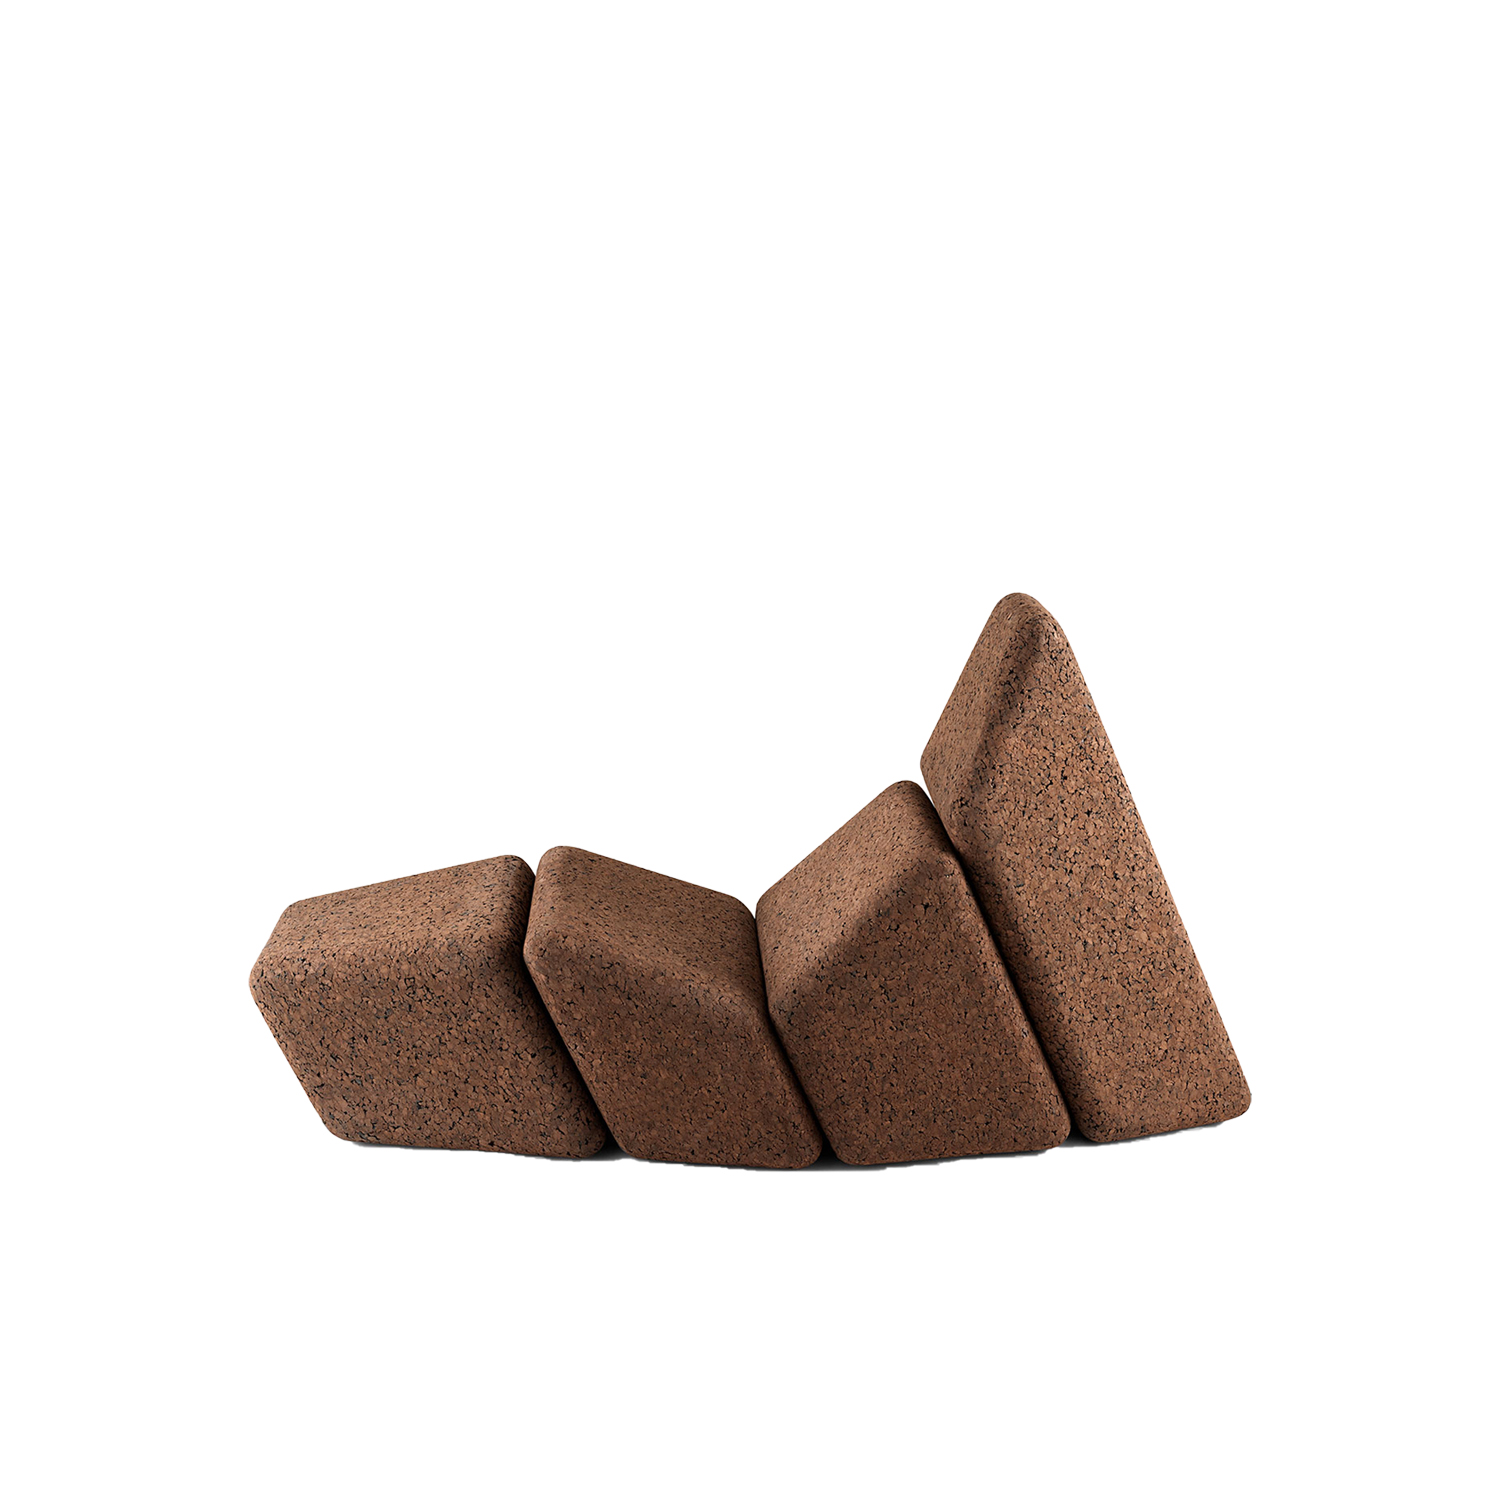 """Cacao Chaise Lounge - It is only used cork of the branches (falca) for the manufacture of cork granules. These are block clusters in autoclave, being 100% natural process, without use of additives. Technology, developed by Sofalca, consists of injecting water vapour through the pallets that will expand and agglutinate with the resins of the cork itself. This """"cooking"""" gives also dark colour to the agglomerated cork, like chocolate. In the production of steam I used biomass, obtained on milling and cleaning the falca, what makes it truly ecological production and without waste, 95% energy self-sufficient. As a super-material, cork offers so many advantages, because in addition to its excellent thermic, acoustic insulation and anti vibration characteristic, it is also a CO2 sink playing a key-role in the environment. 